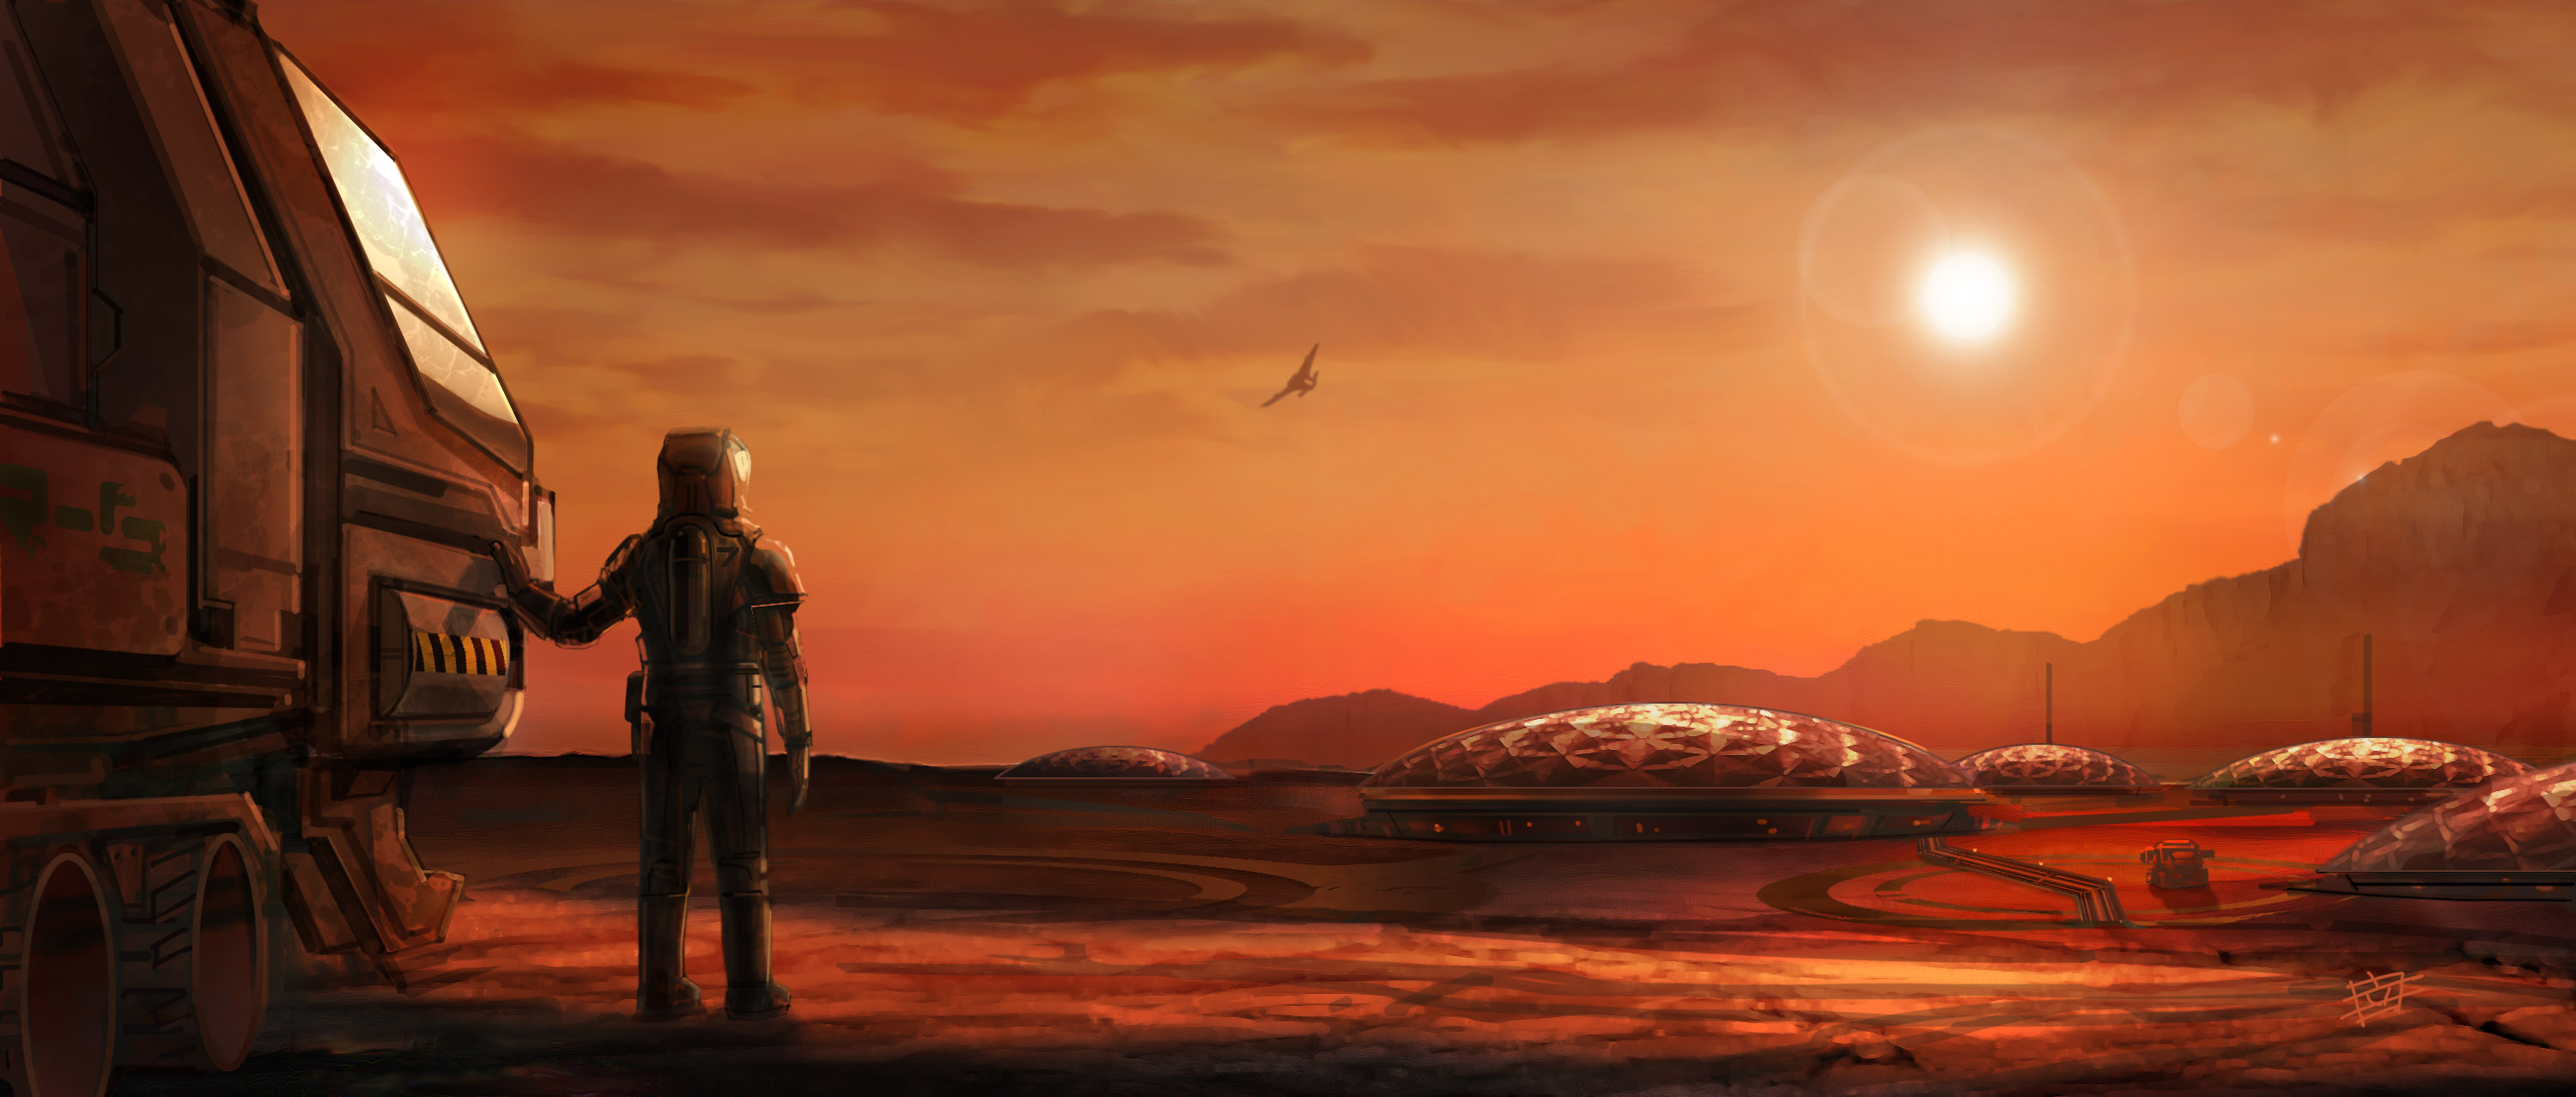 Space Opera Backgrounds on Wallpapers Vista